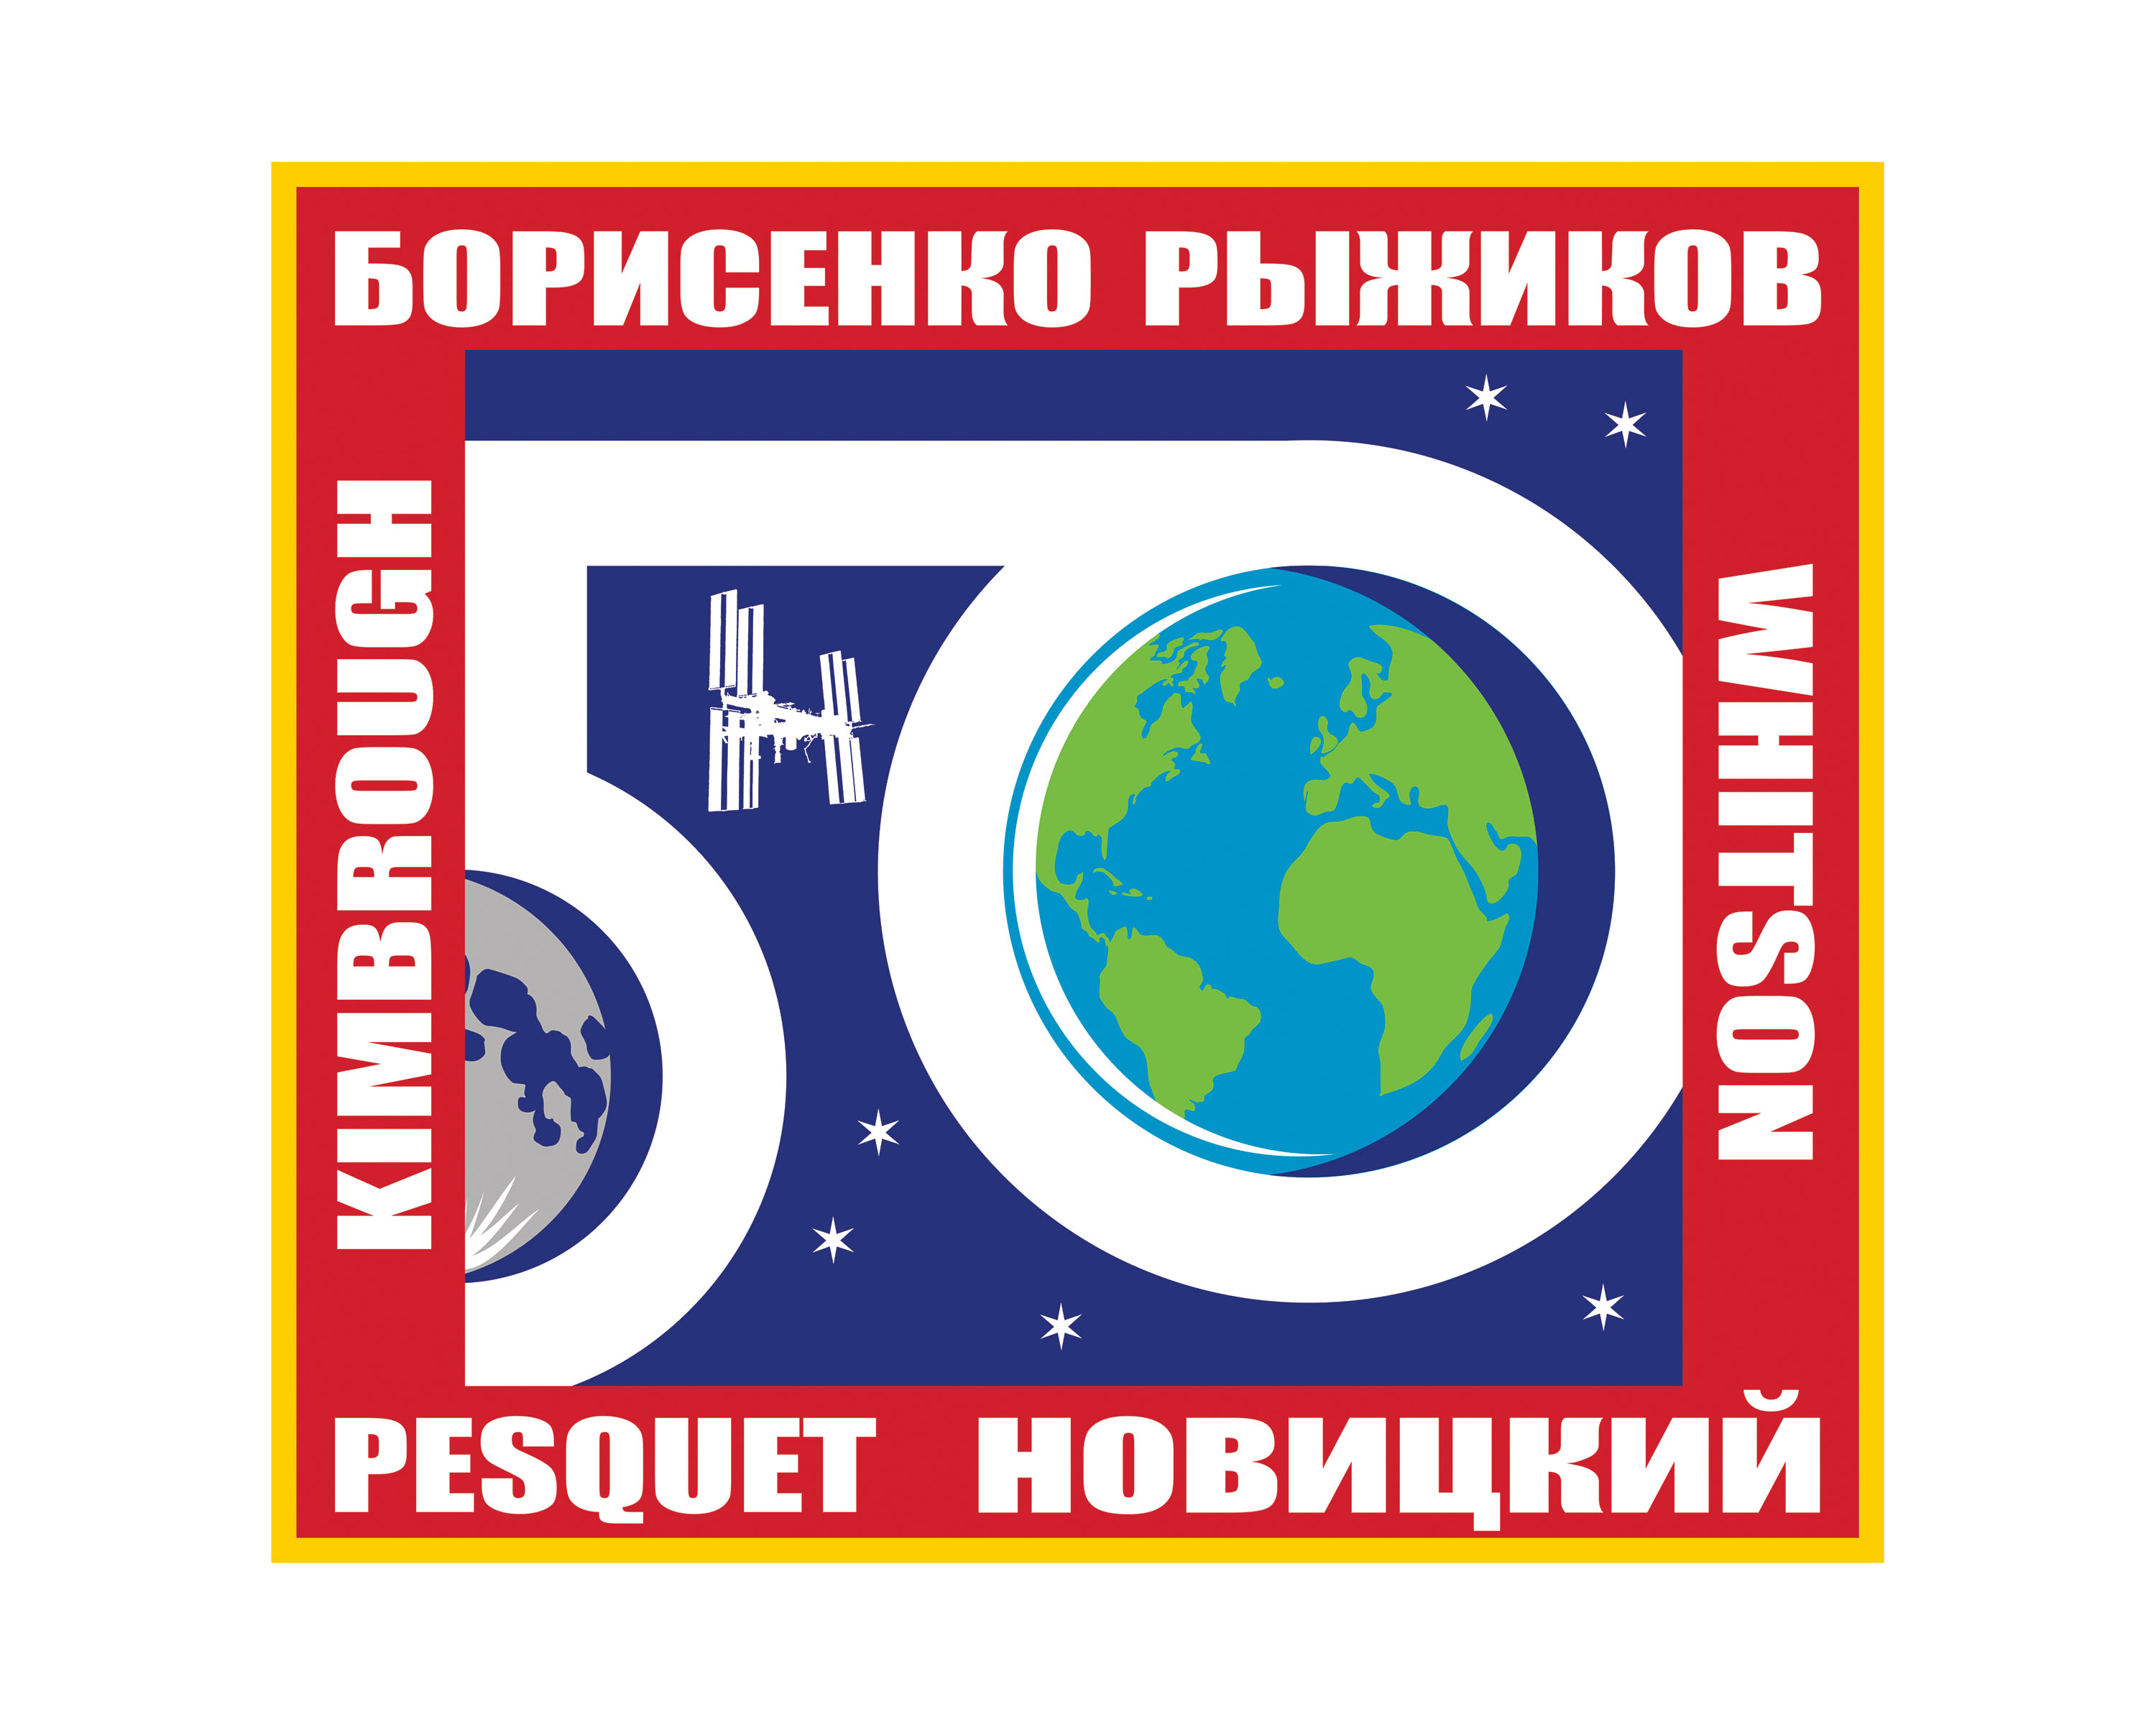 Expedition 50 Crew Patch - Credit: NASA/Roscosmos